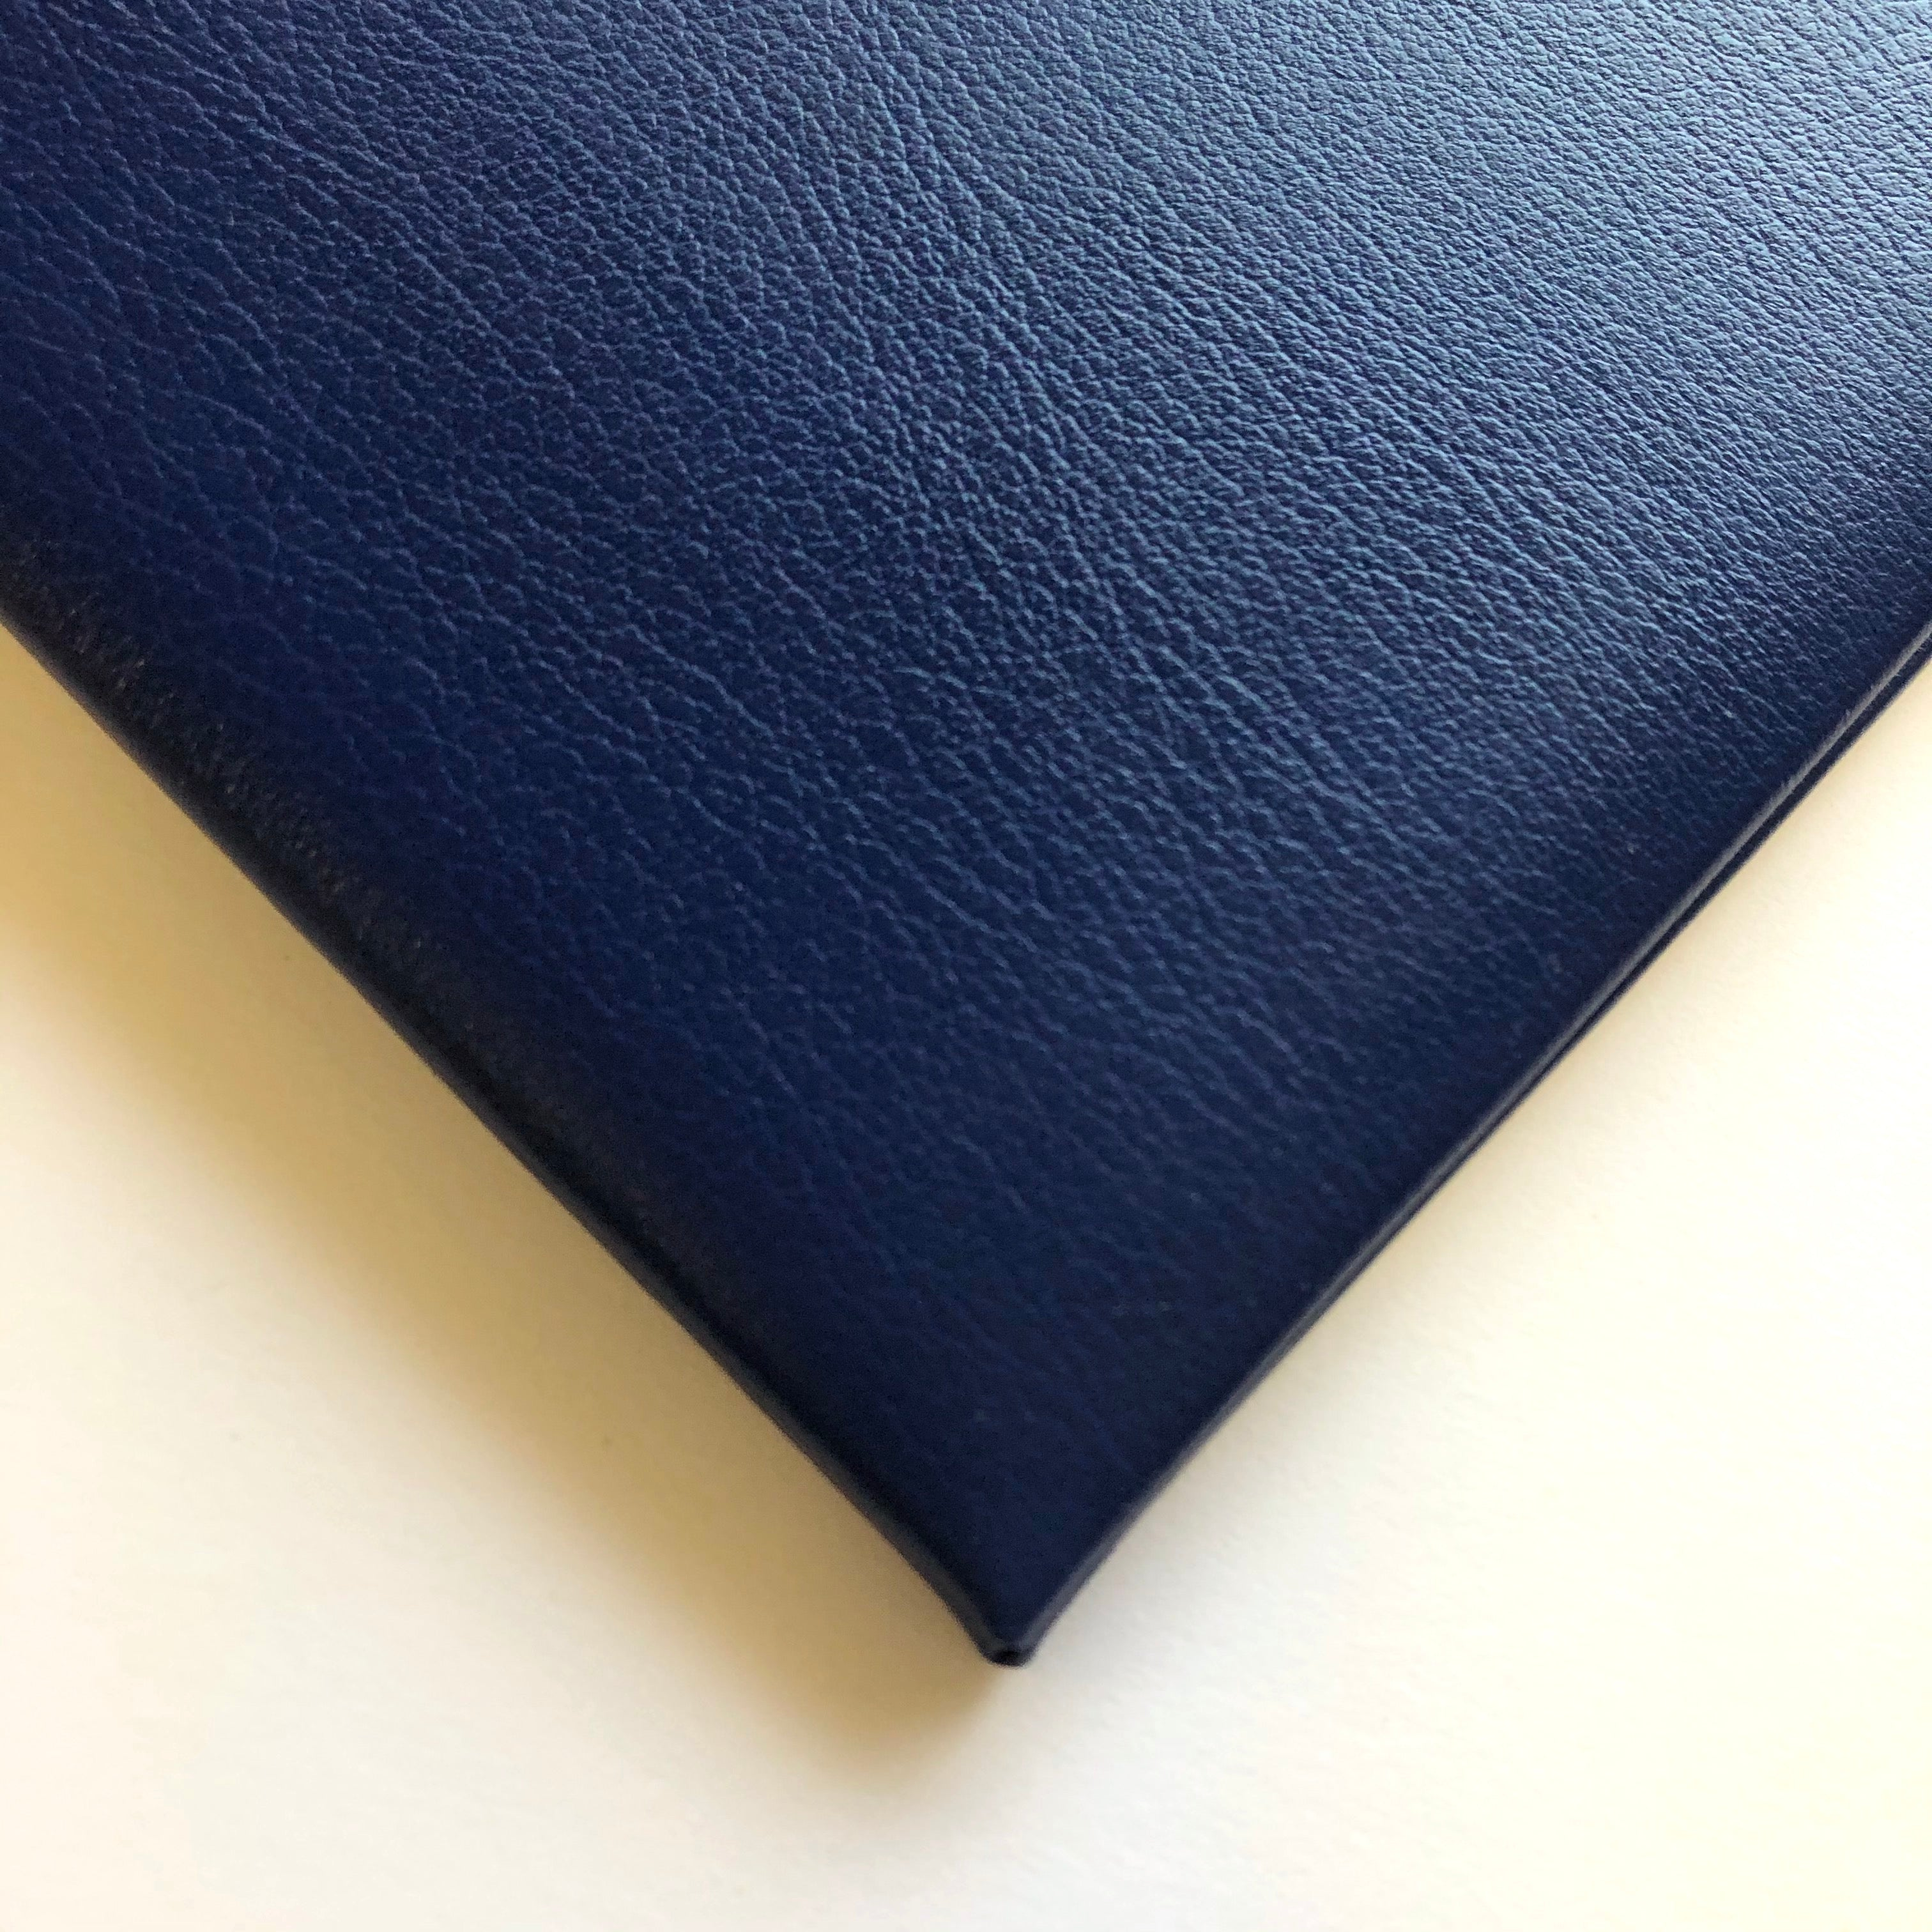 Swatch of Royal Blue Leather Visitors Book